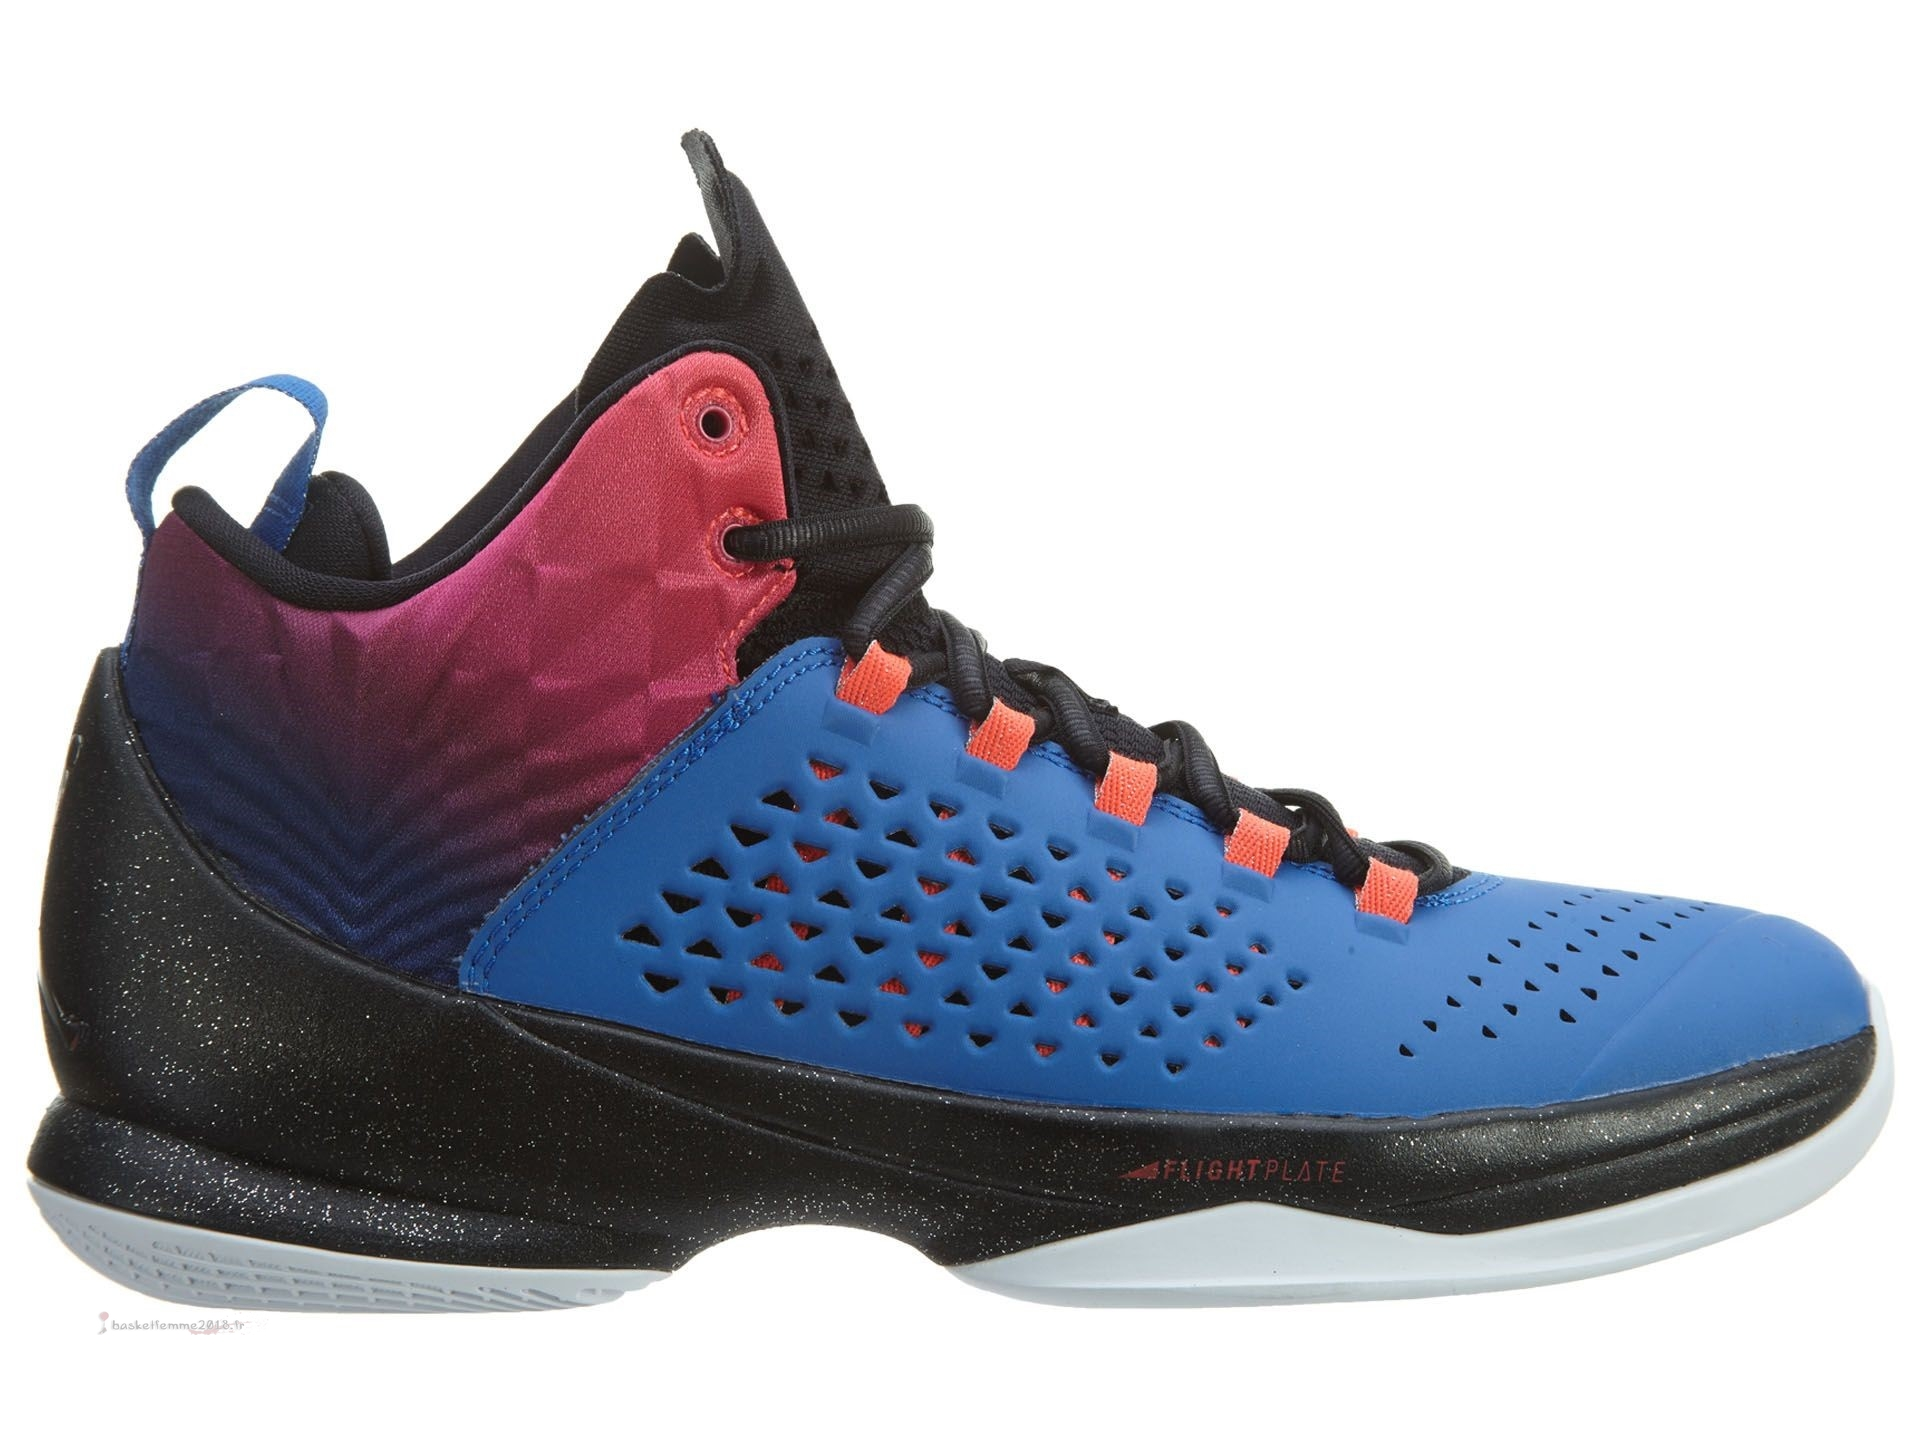 Air Jordan Melo M11 Bleu Noir Orange (716227-425) Chaussure de Basket